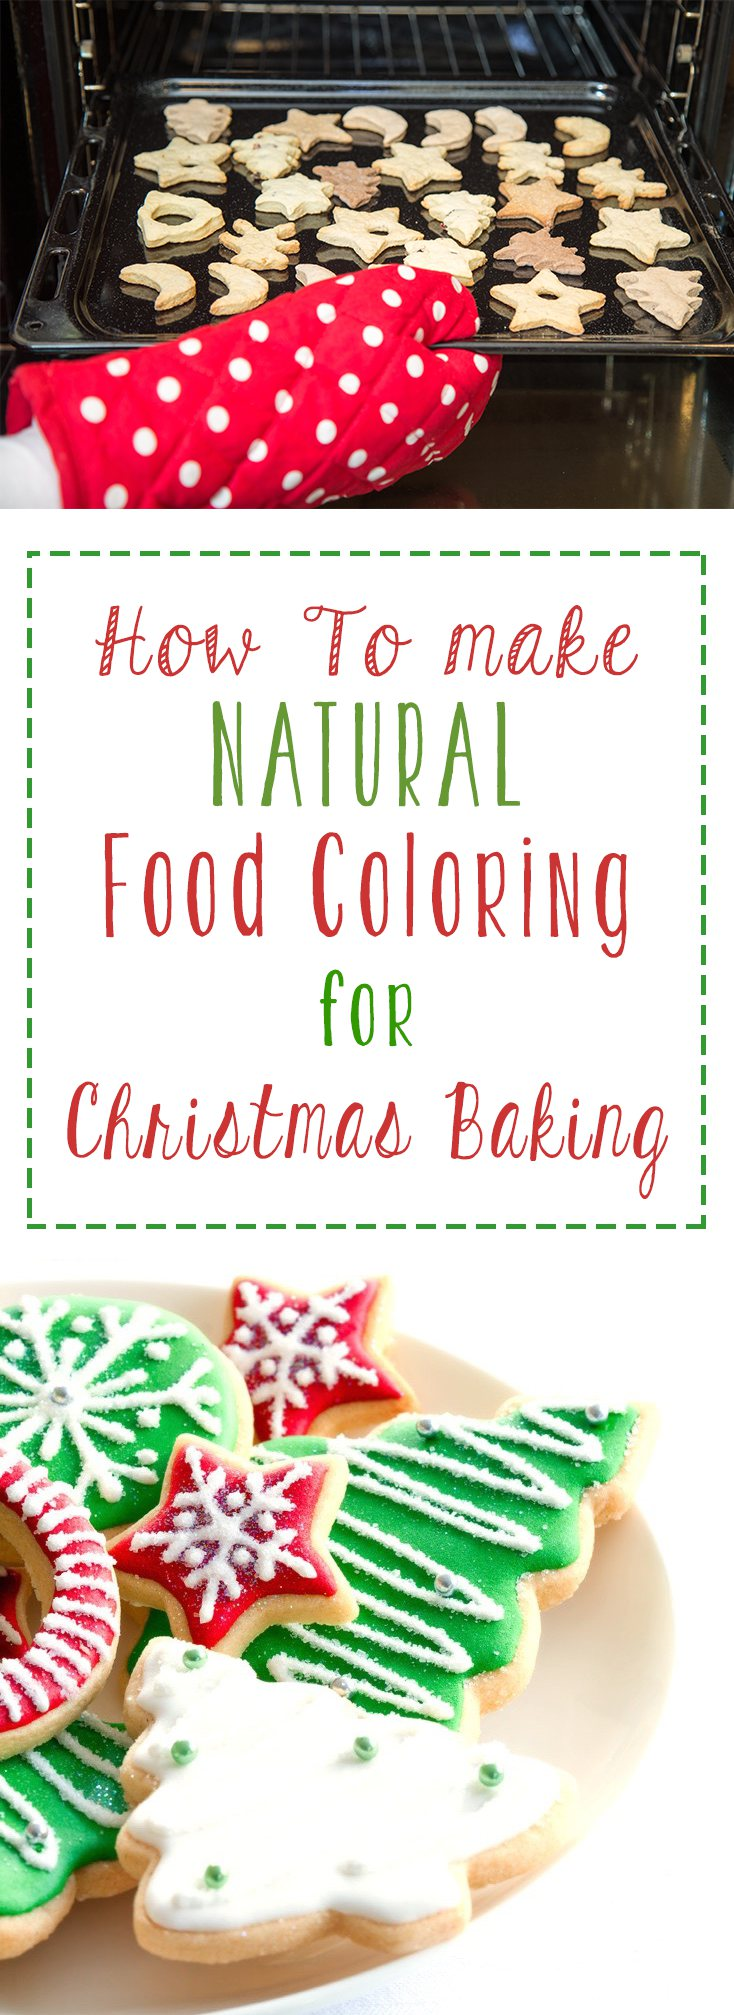 to Make Natural Food Coloring for Christmas Baking